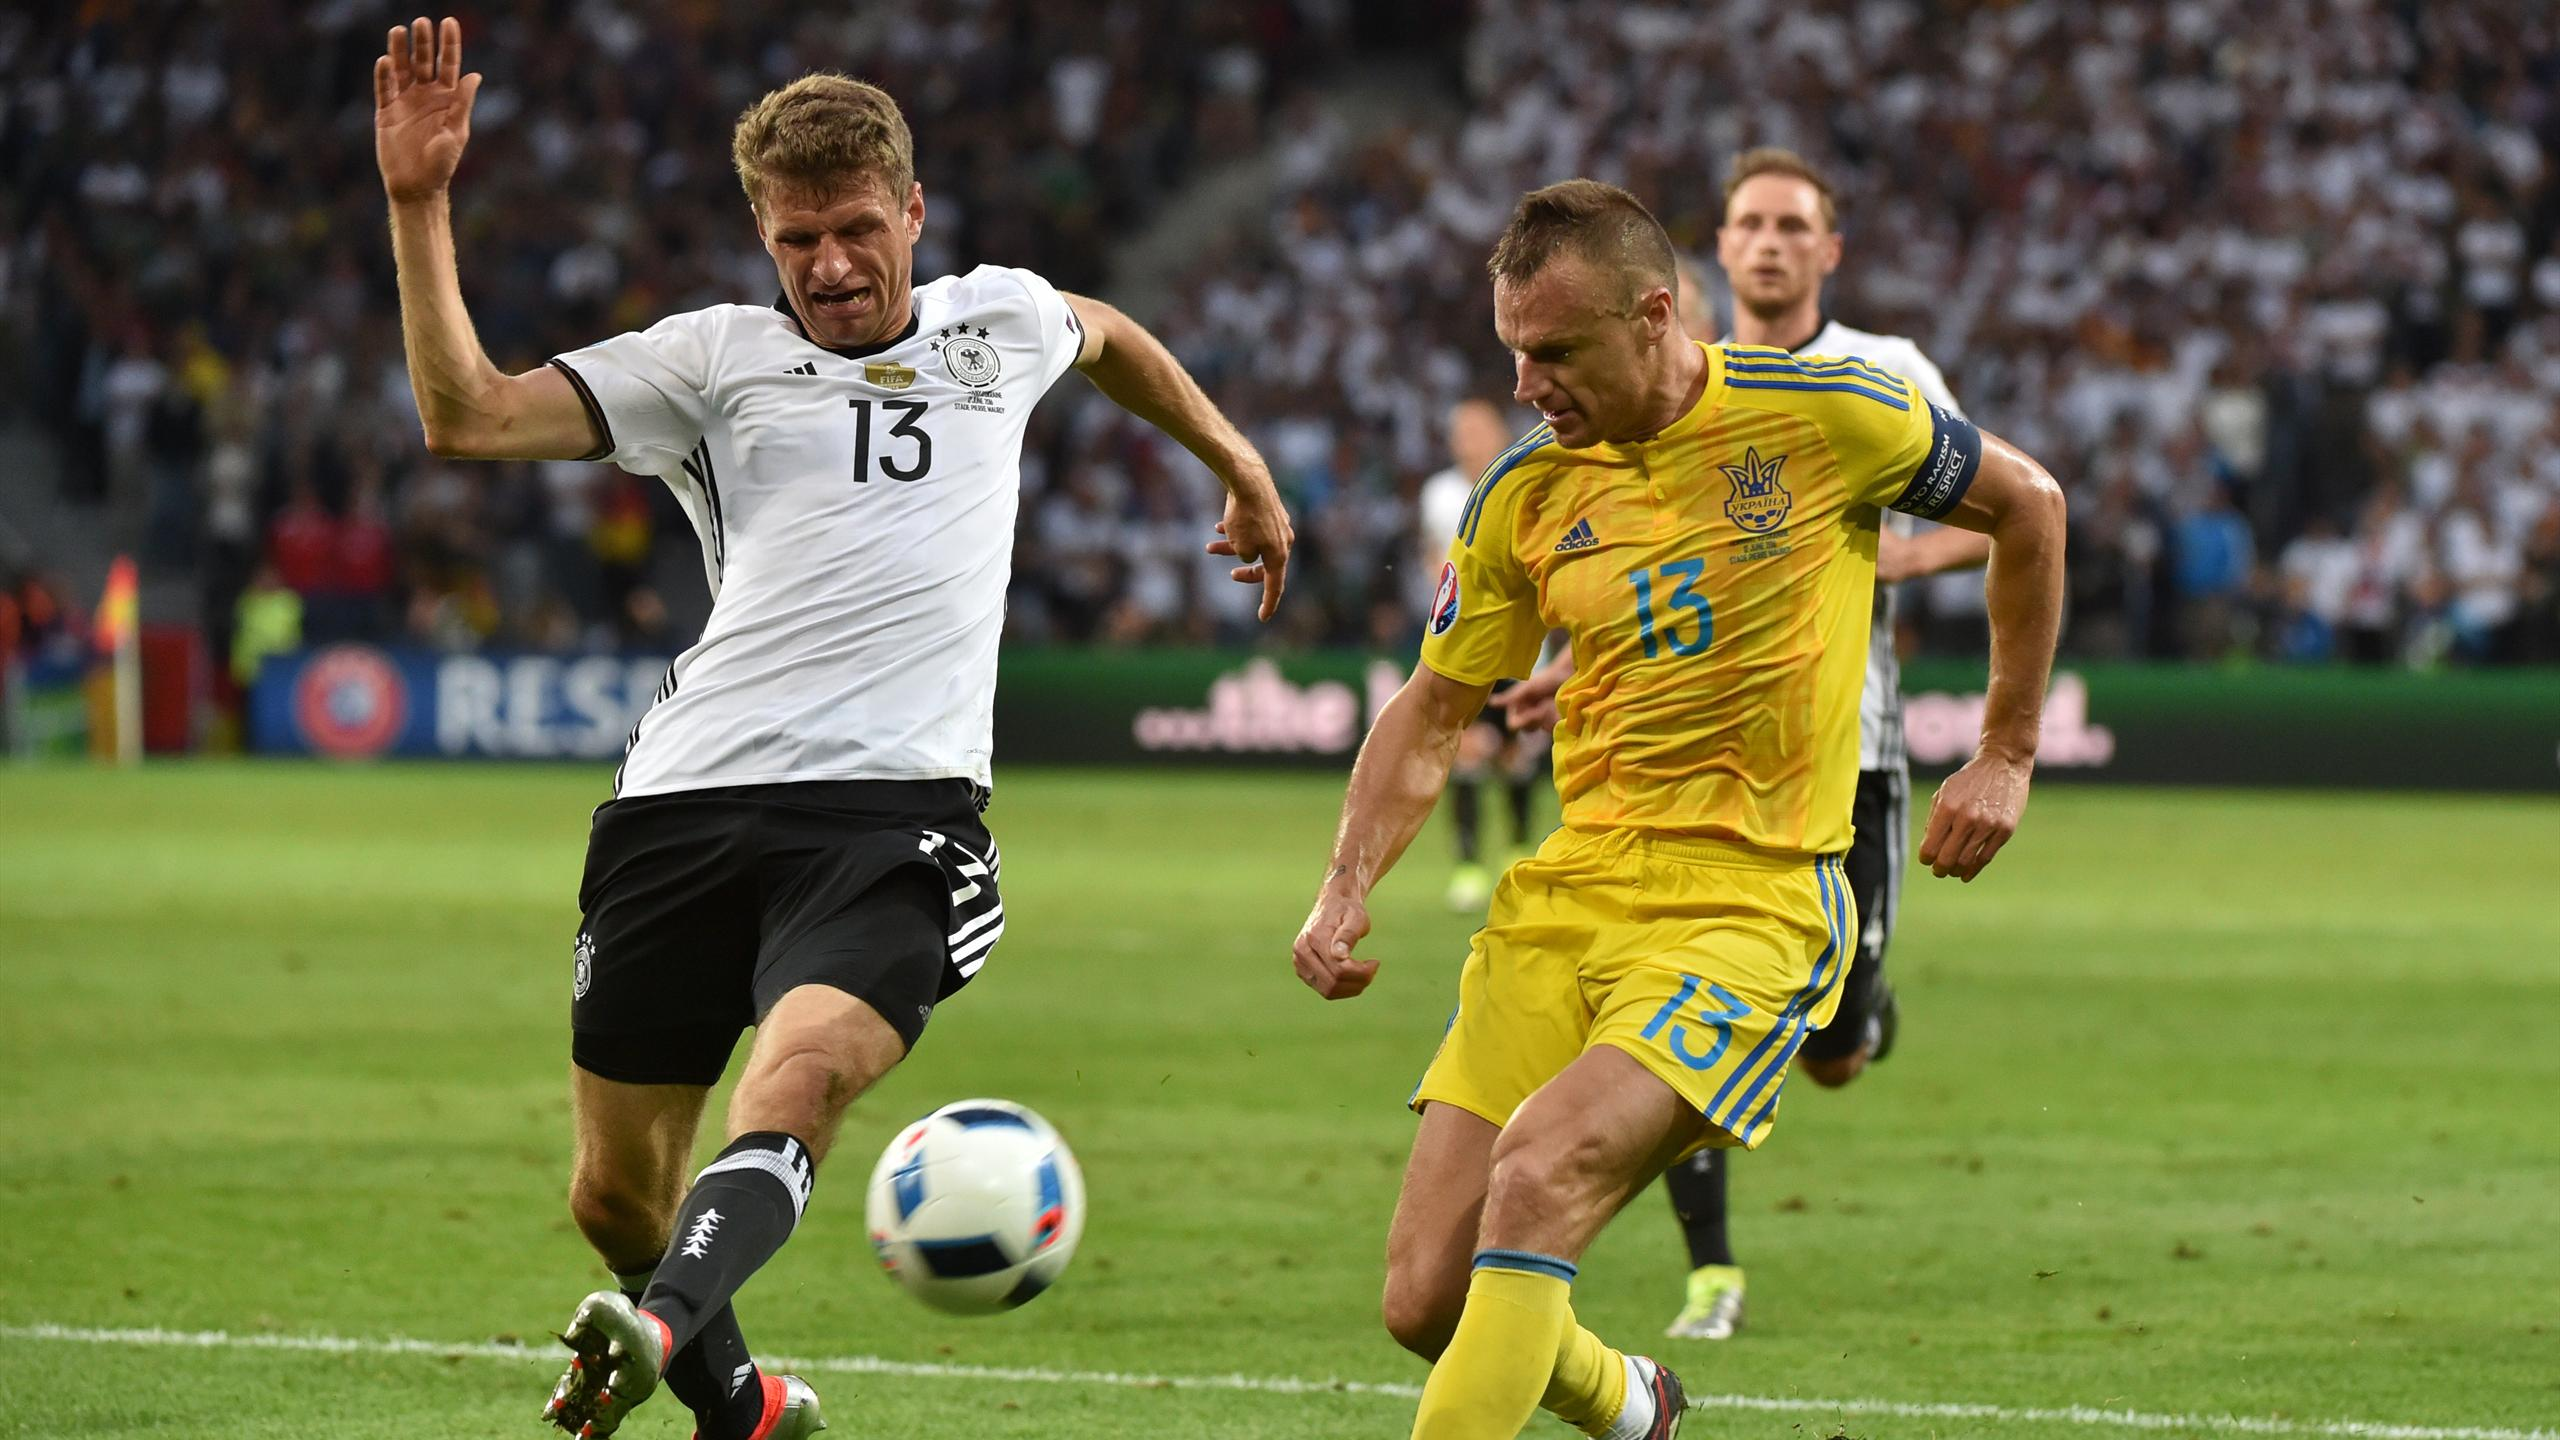 Ukraine's defender Vyacheslav Shevchuk (R) challenges Germany's midfielder Thomas Mueller during the Euro 2016 group C football match between Germany and Ukraine